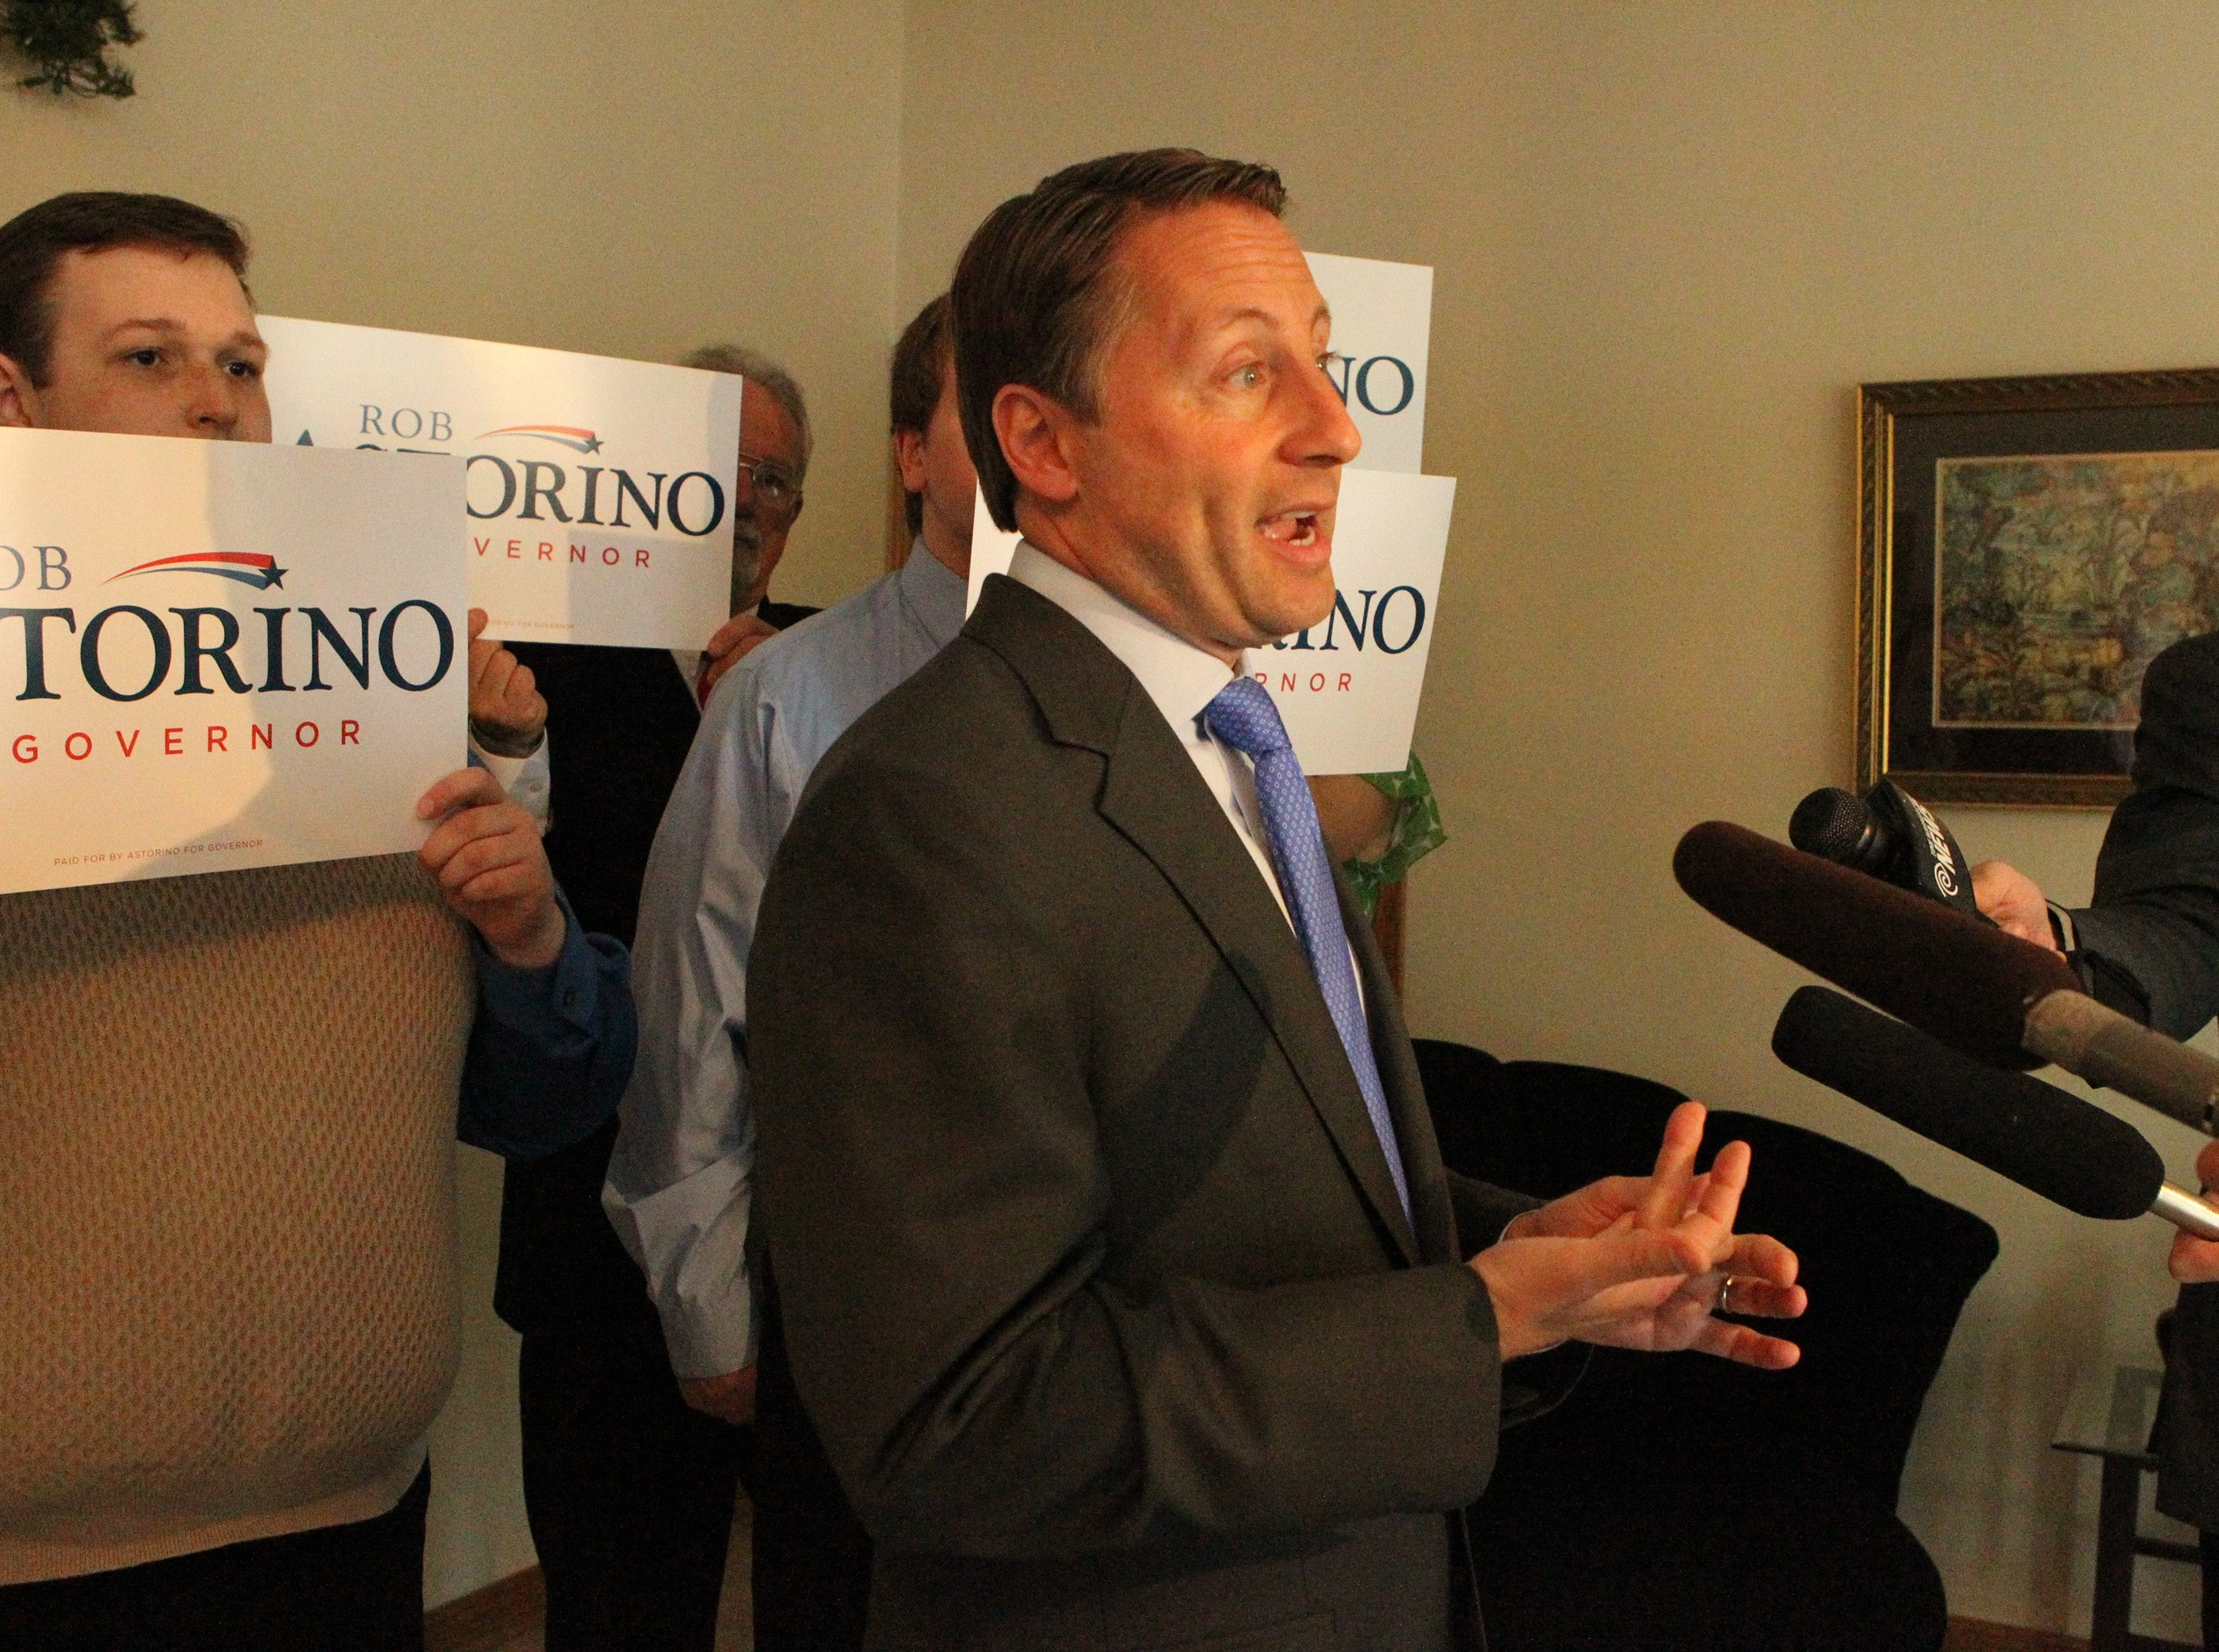 Republican gubernatorial candidate Rob Astorino talked to the media before  attending the Niagara County Republican Party's dinner at Suzanne's Fine Dining in Niagara Falls on Thursday.